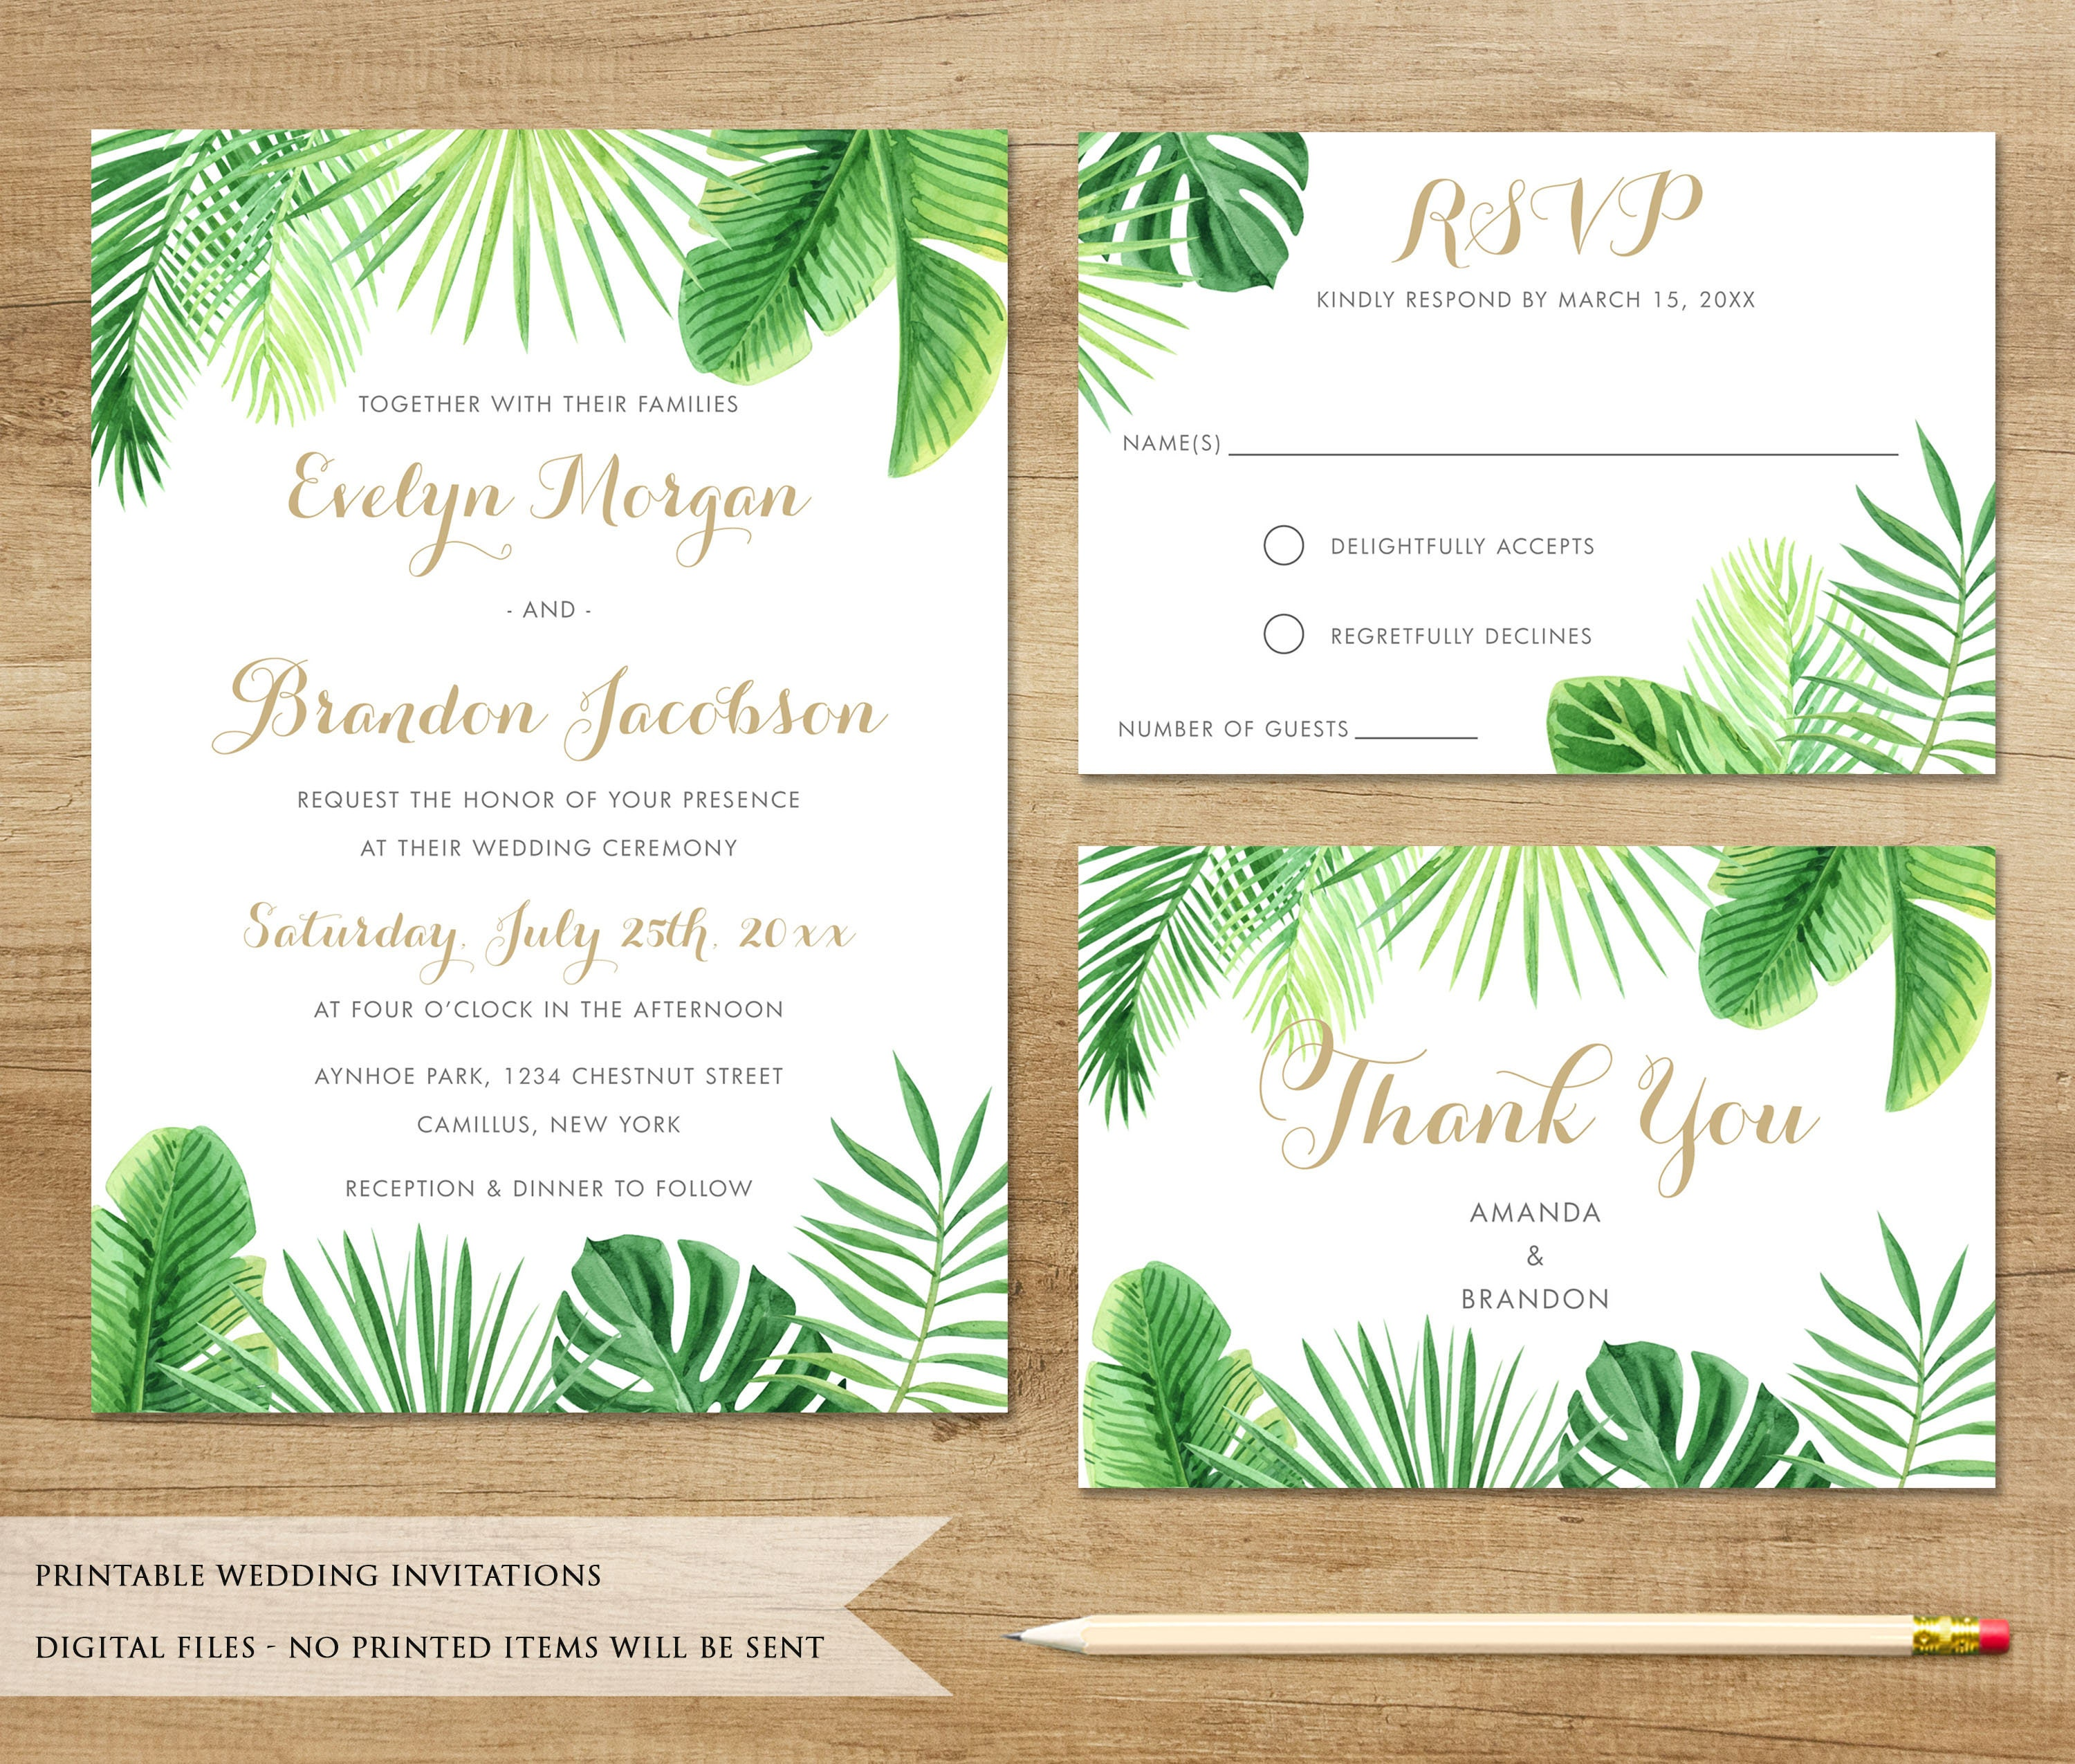 Tropical Wedding Invitation. Tropical Leaves. Beach Wedding